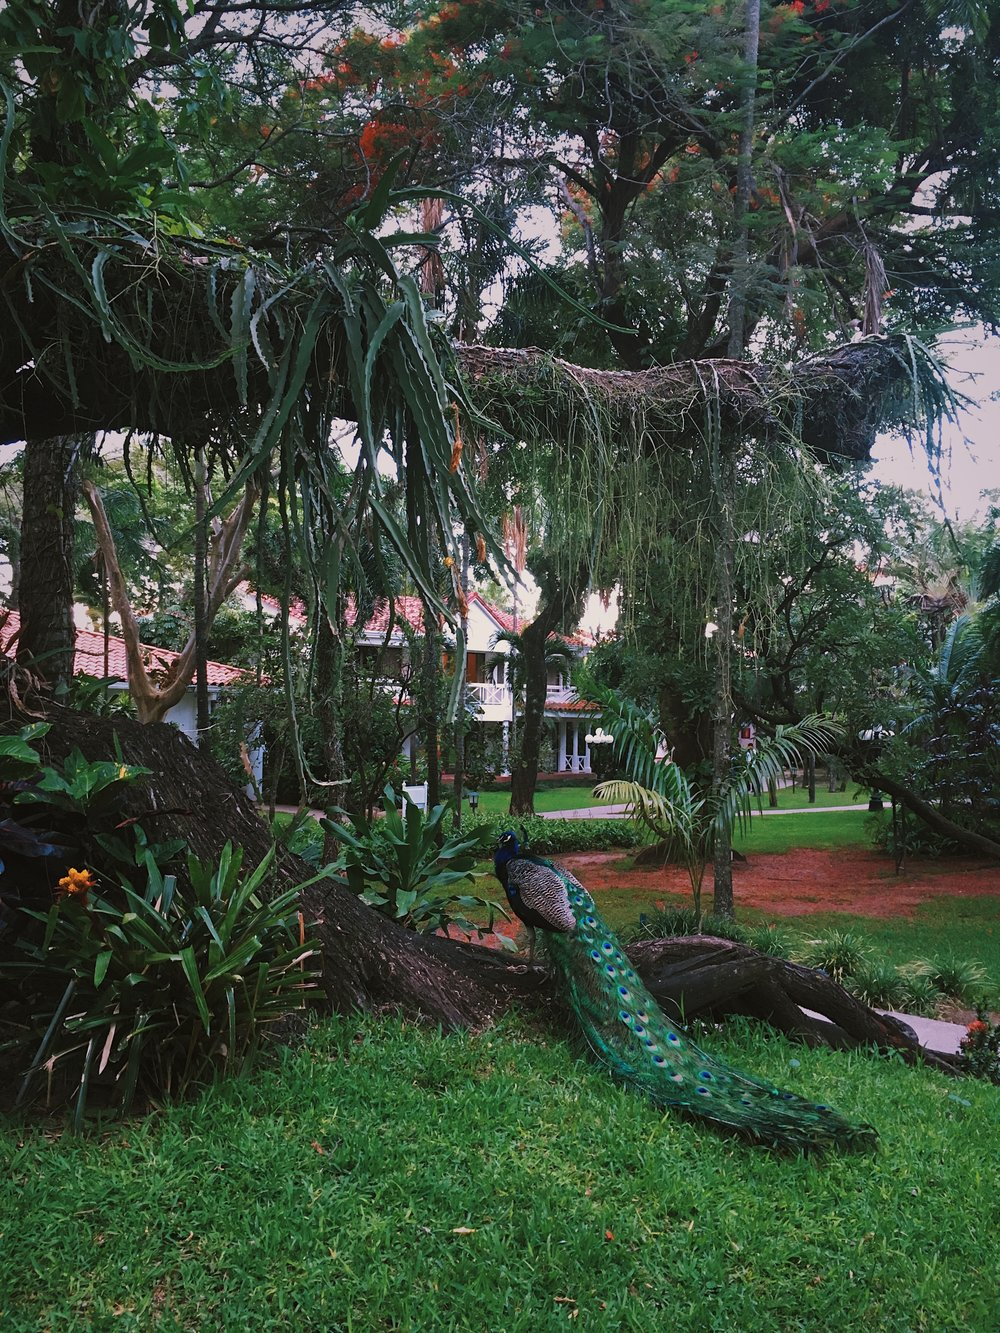 Fertile and lush grounds of Los Tajibos Hotel and Convention Centre where peacocks and peahens roam freely.